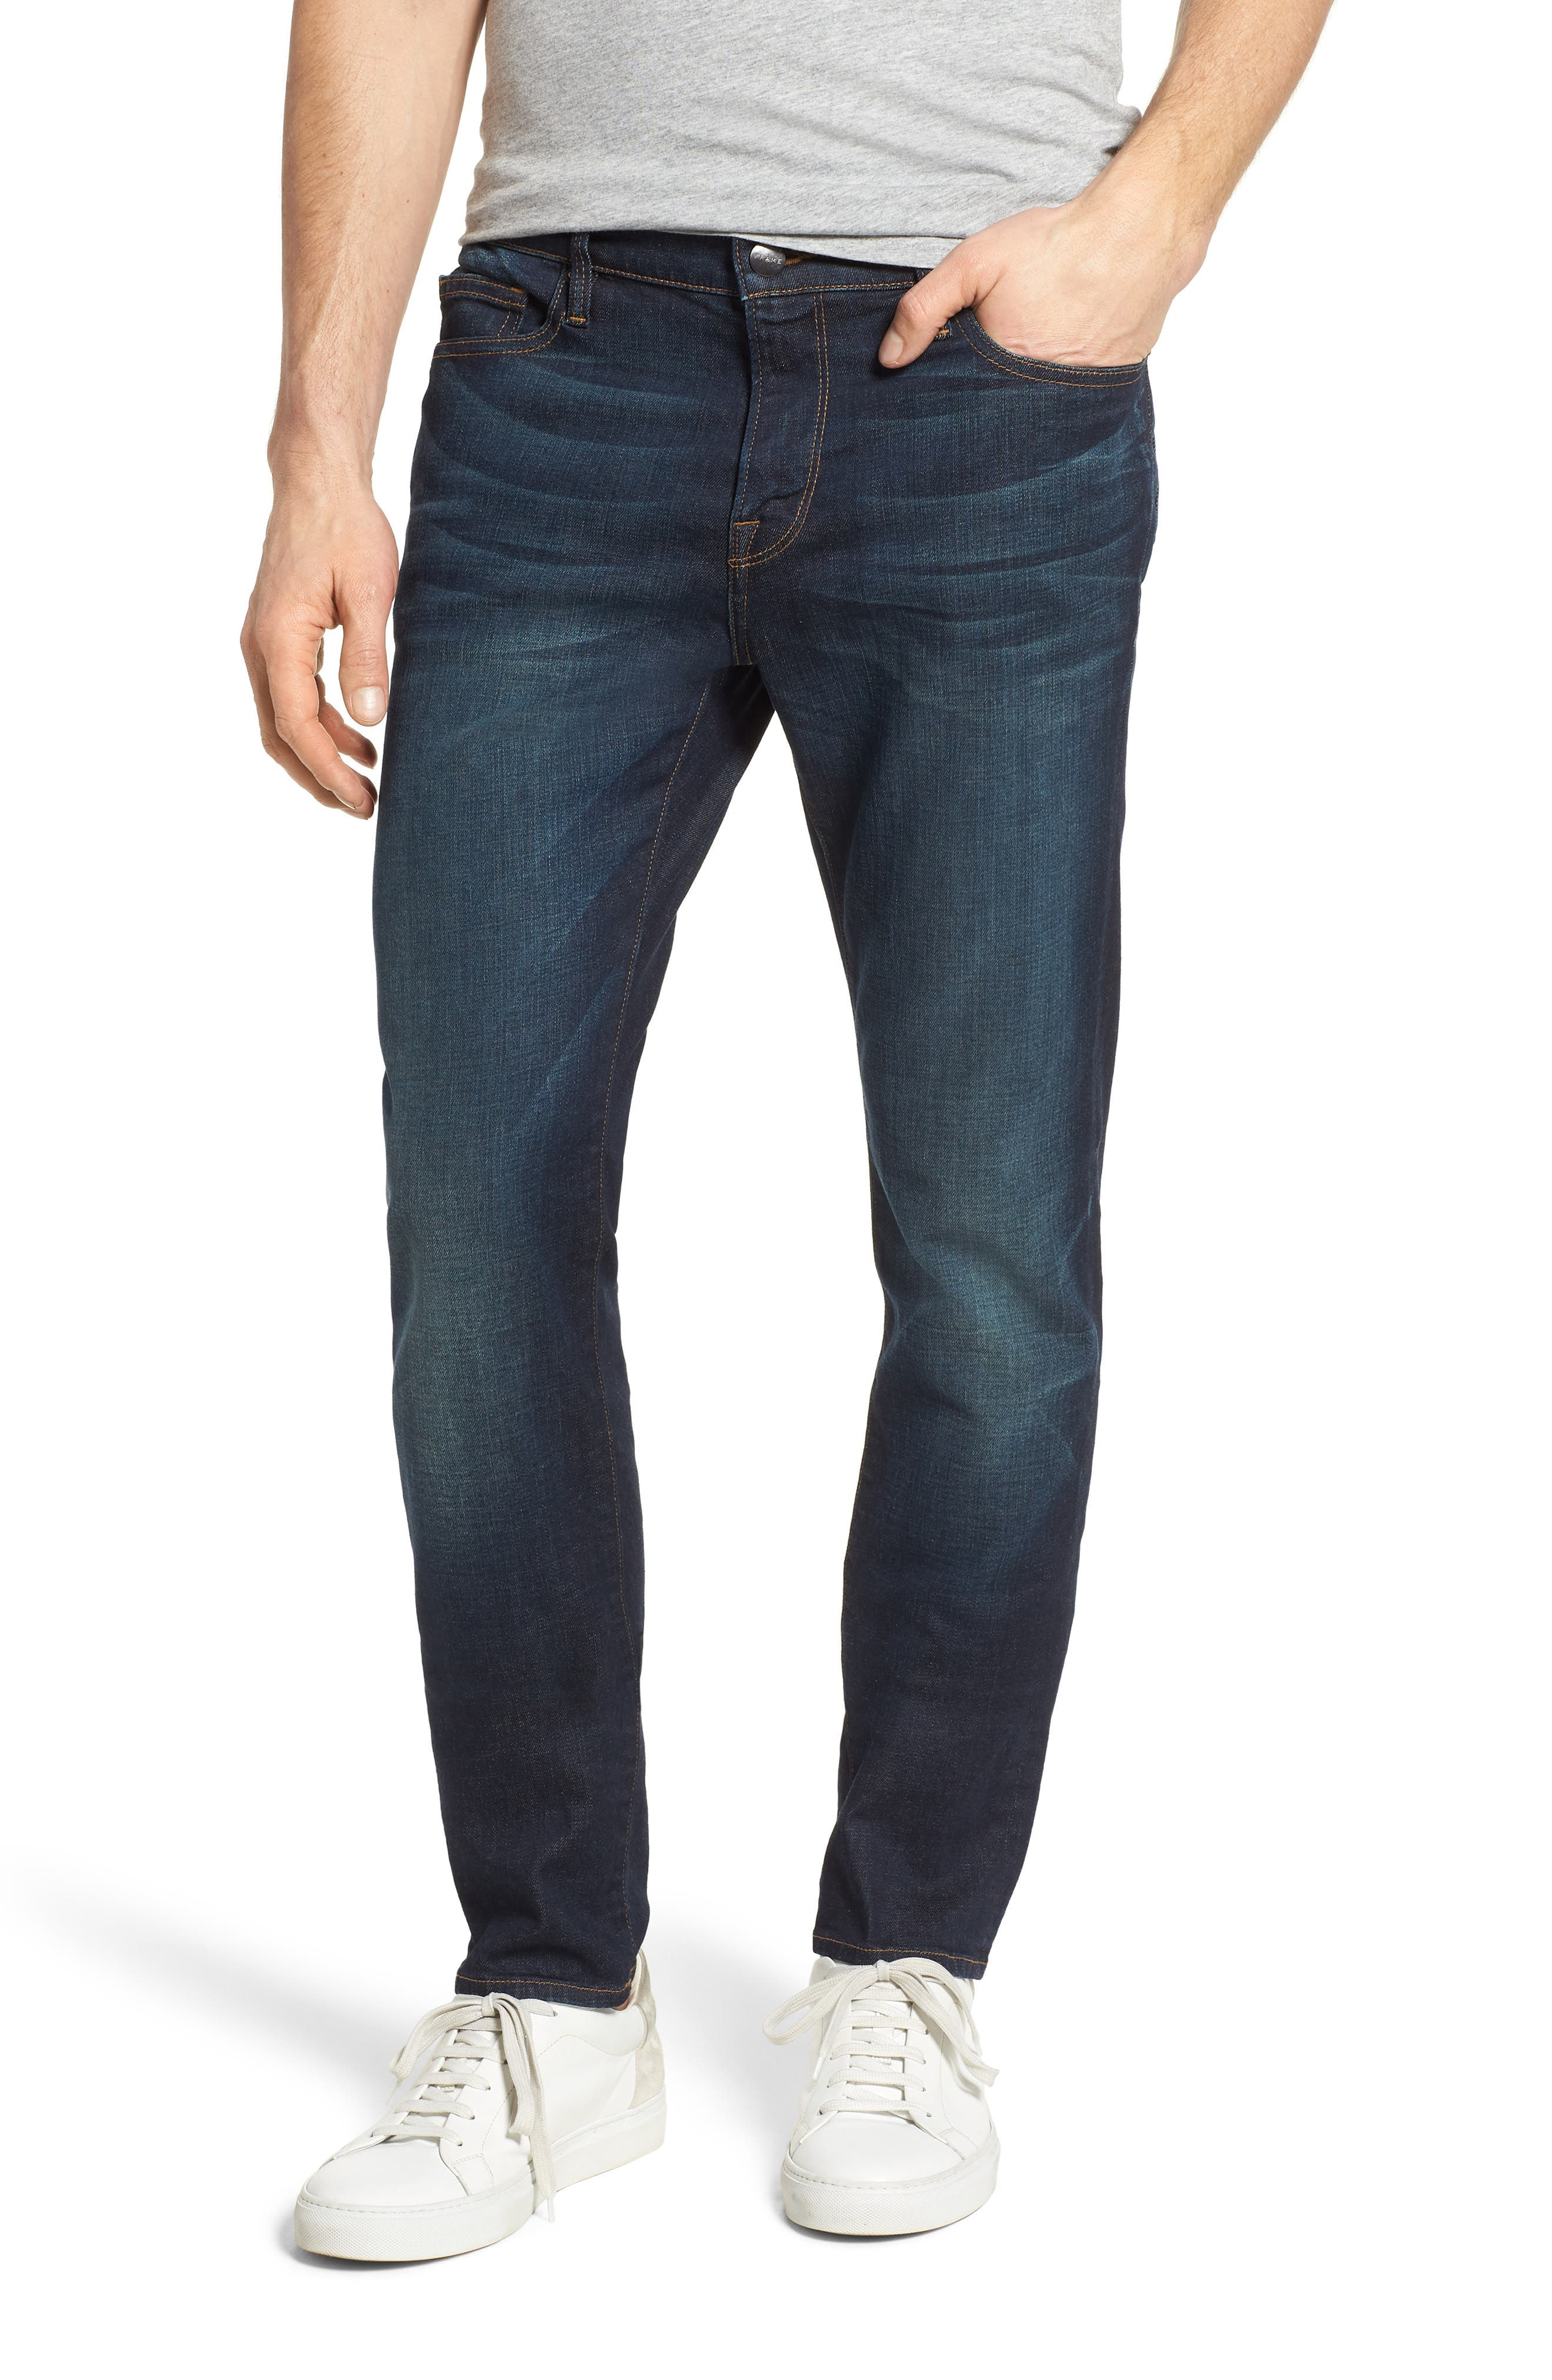 L'Homme Skinny Fit Jeans,                             Alternate thumbnail 2, color,